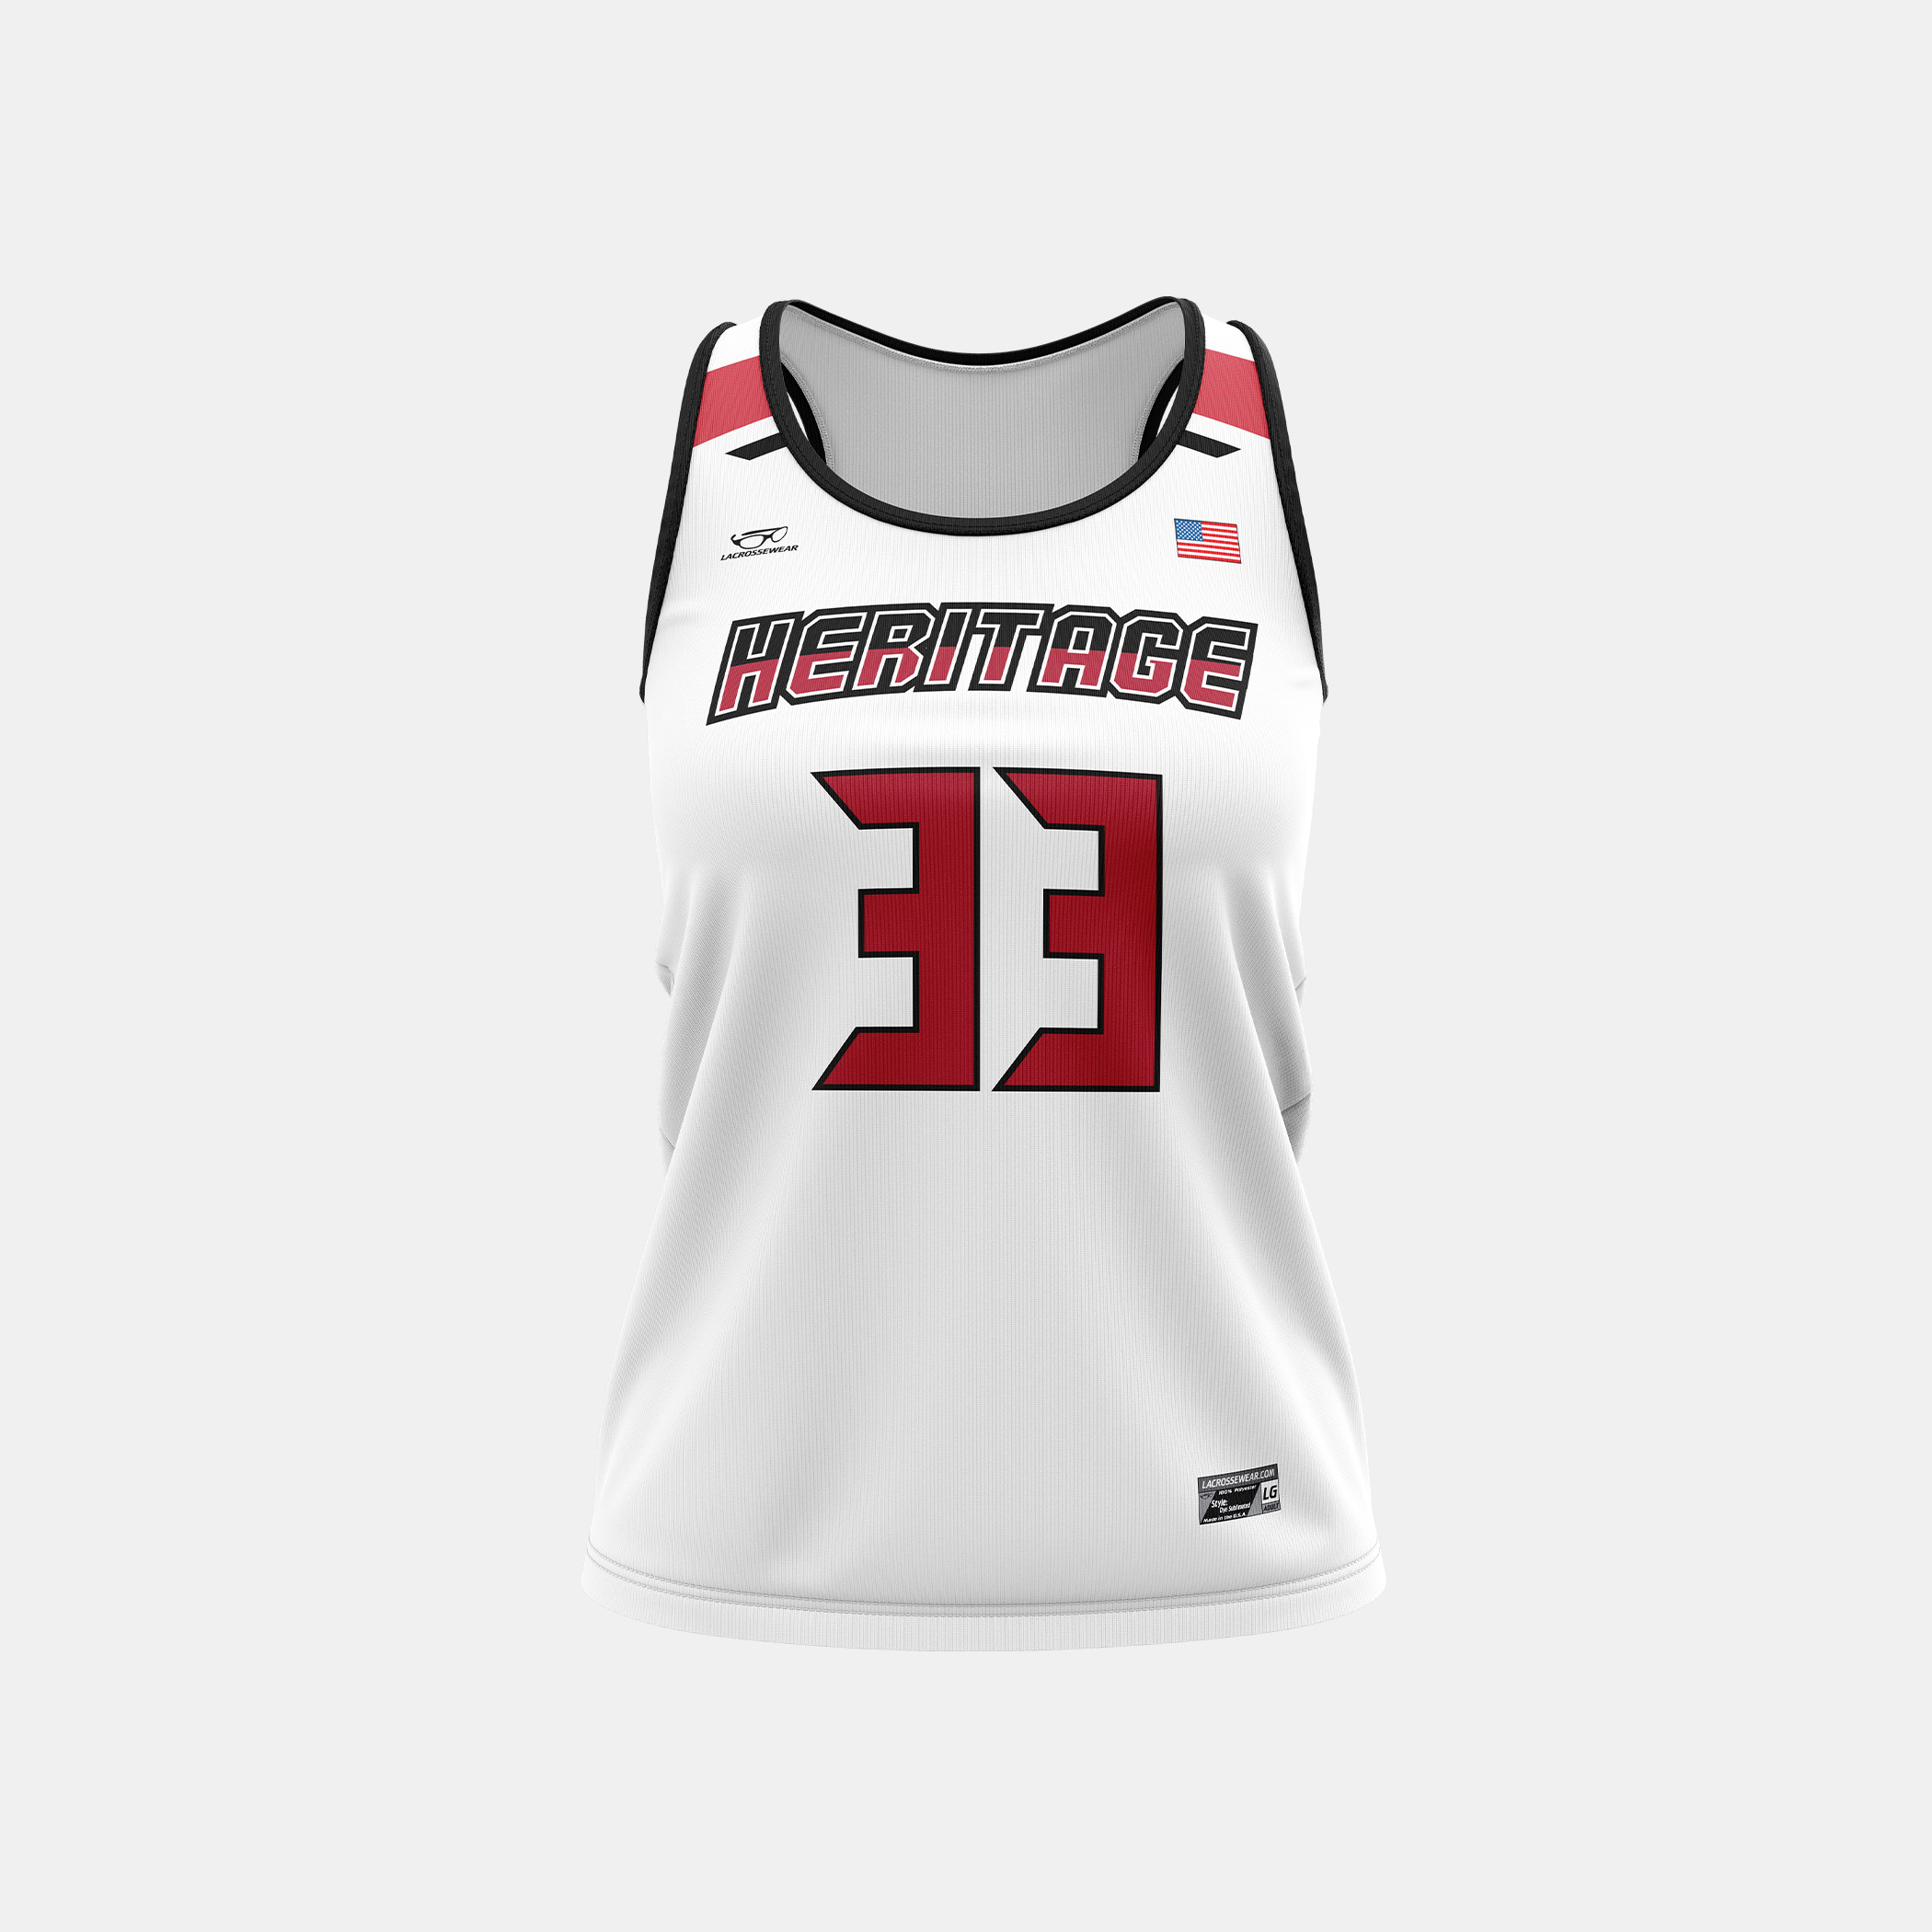 Heritage Racerback Jersey White Front